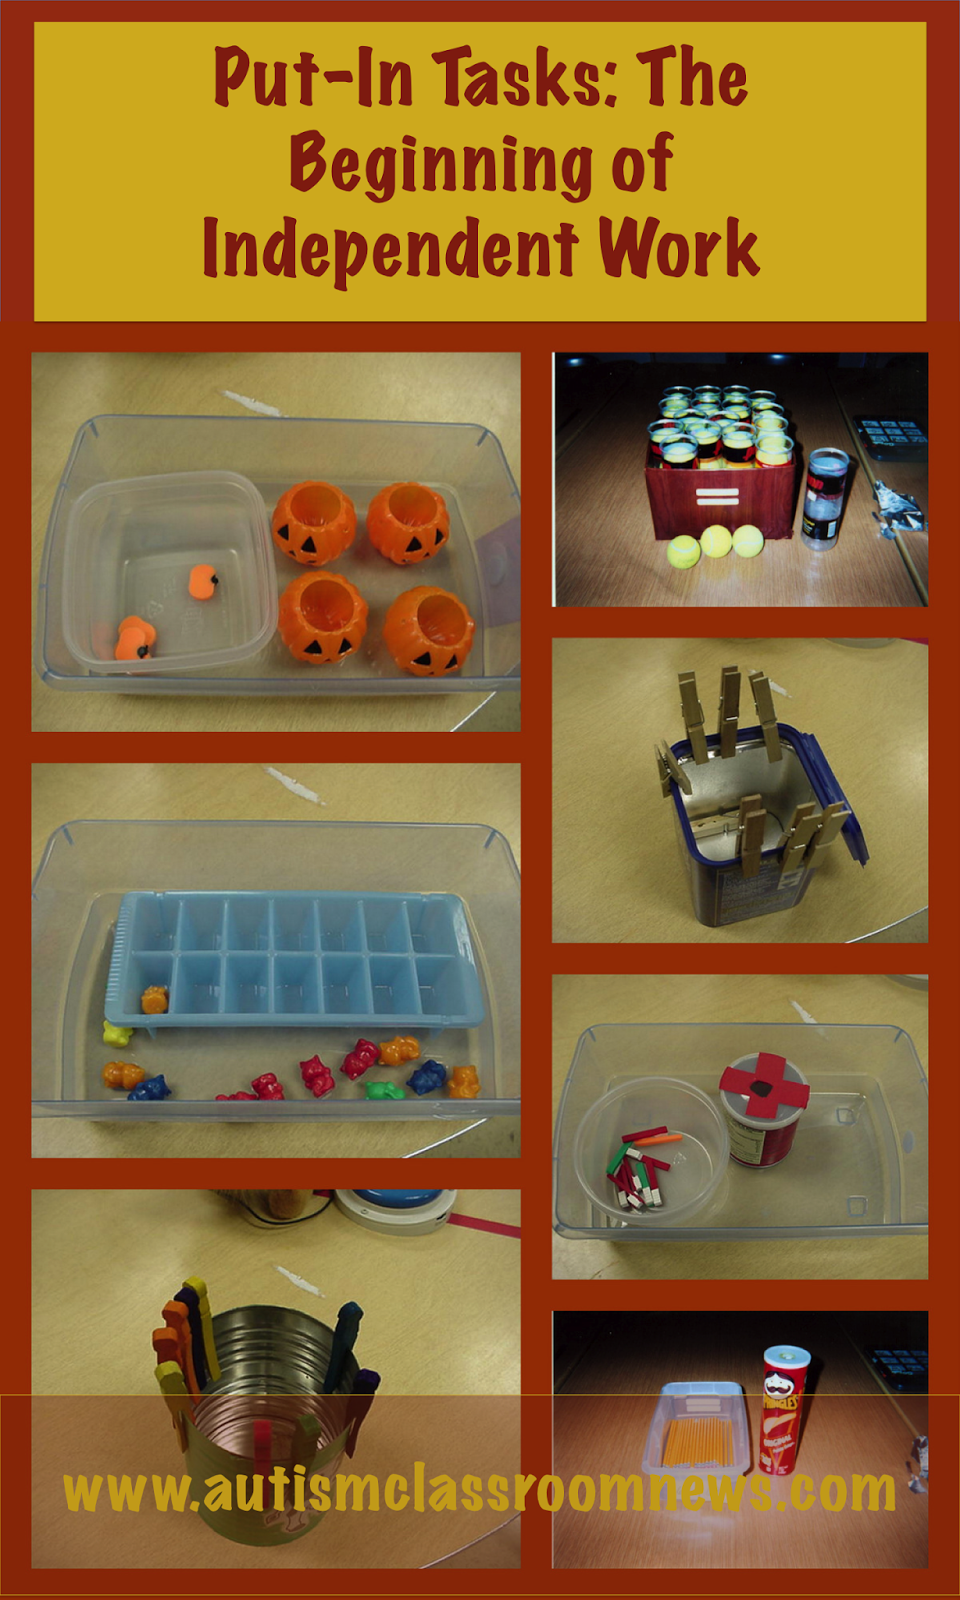 put in tasks the beginning of independent work systems autism i was observing a little guy in preschool who had just entered school the other day he was still working on basic skills like following directions and had